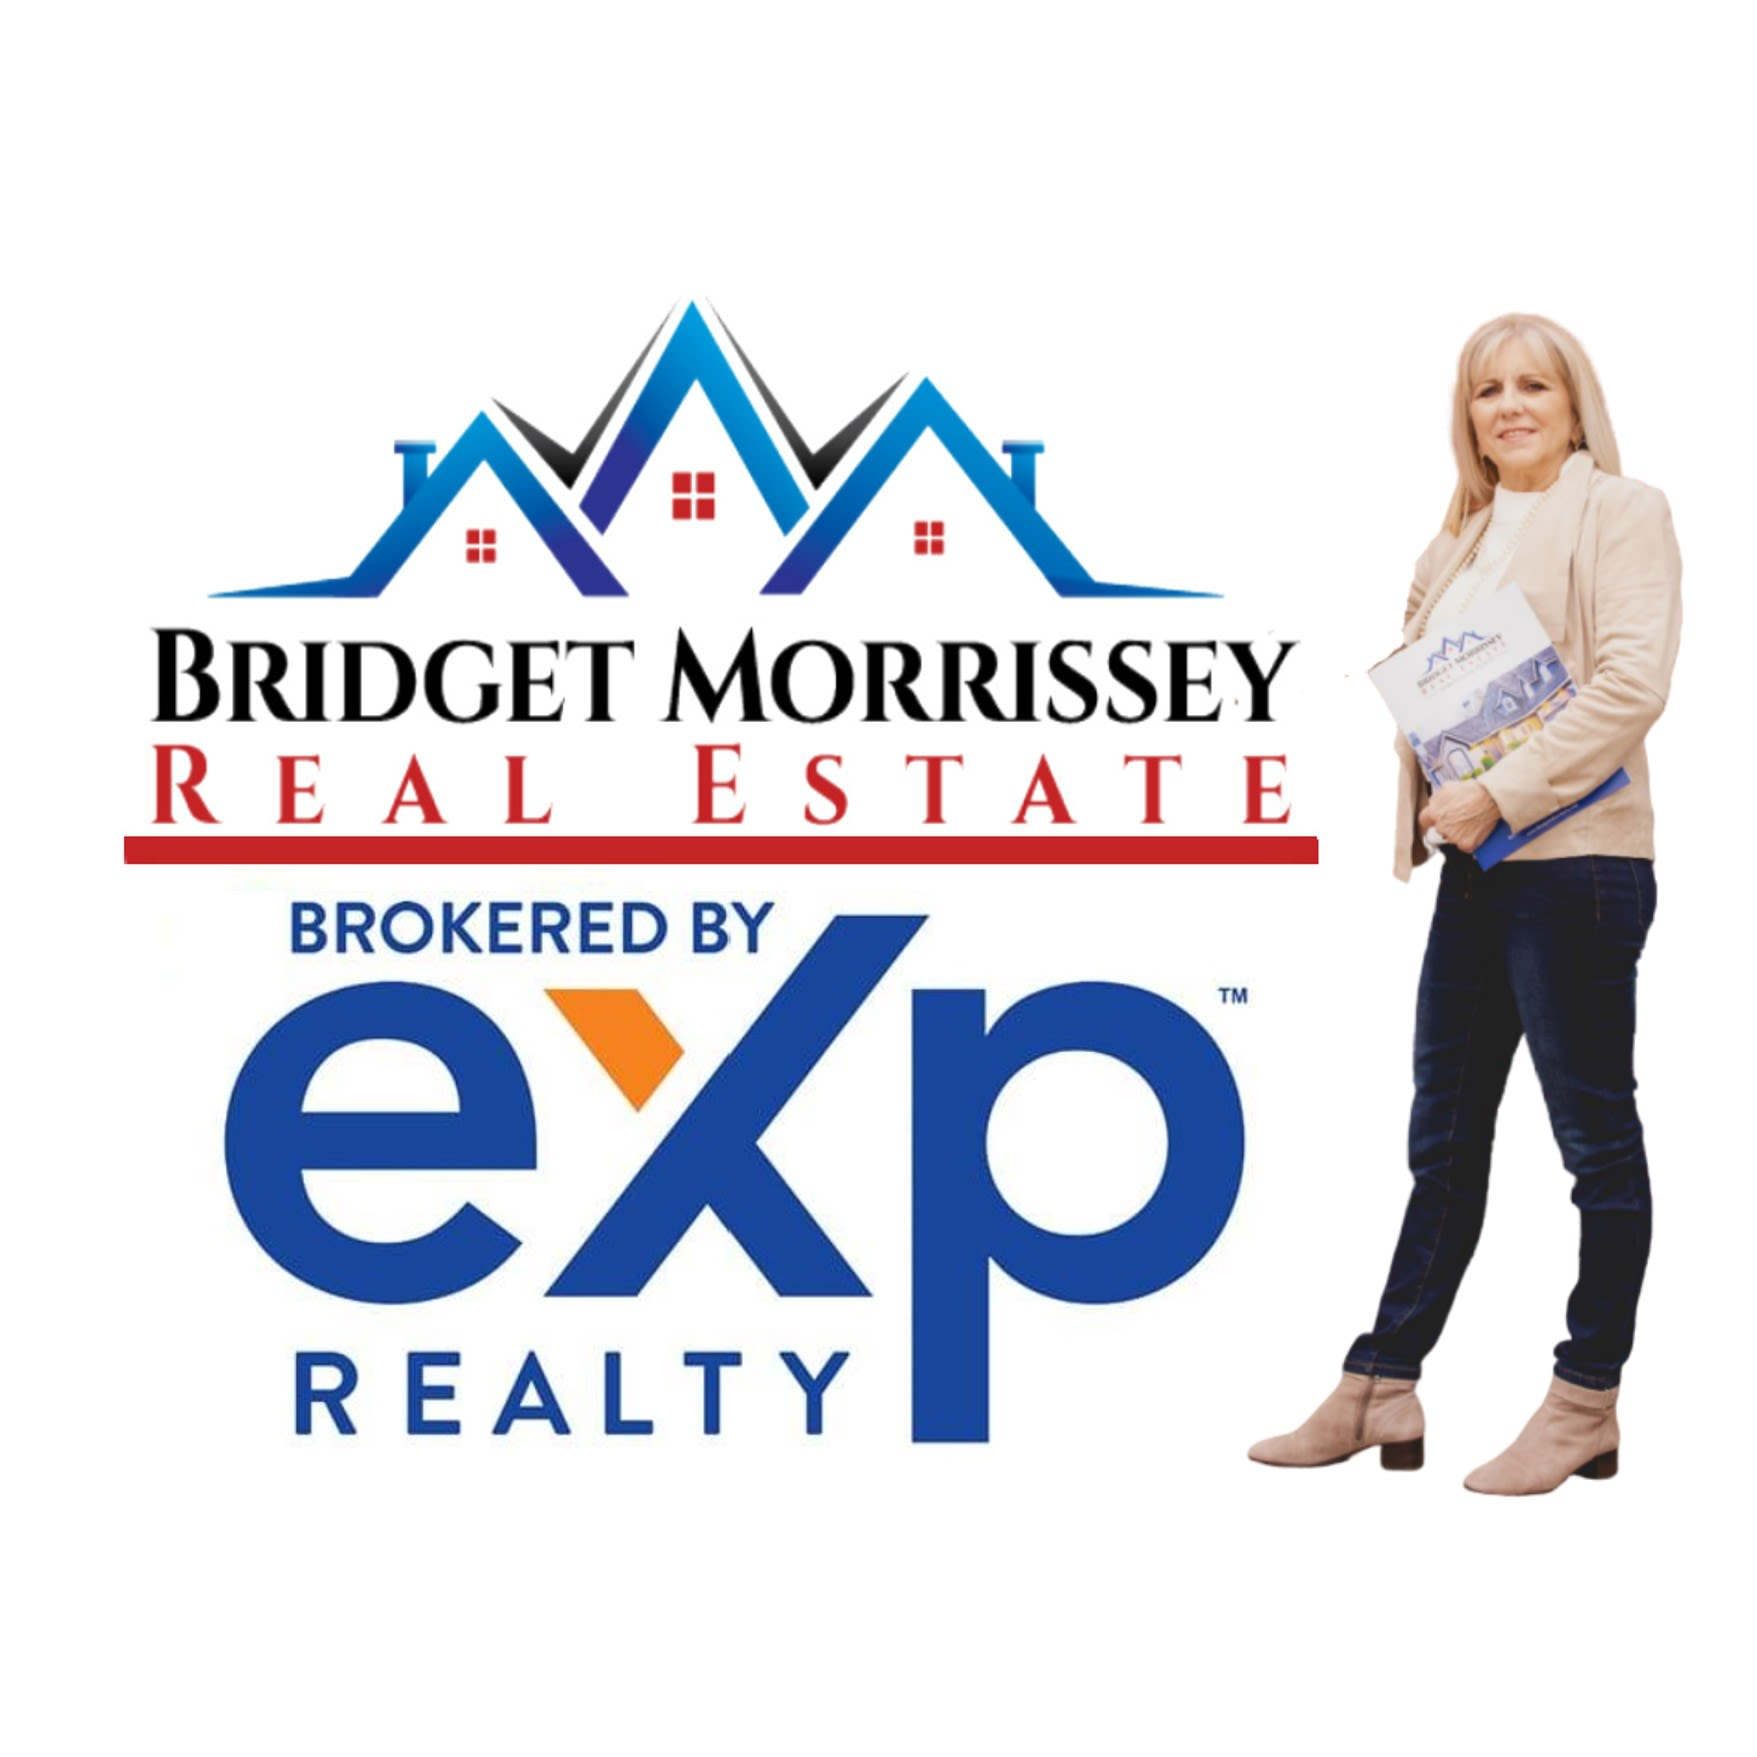 BRIDGET MORRISSEY REAL ESTATE brokered by eXp Realty